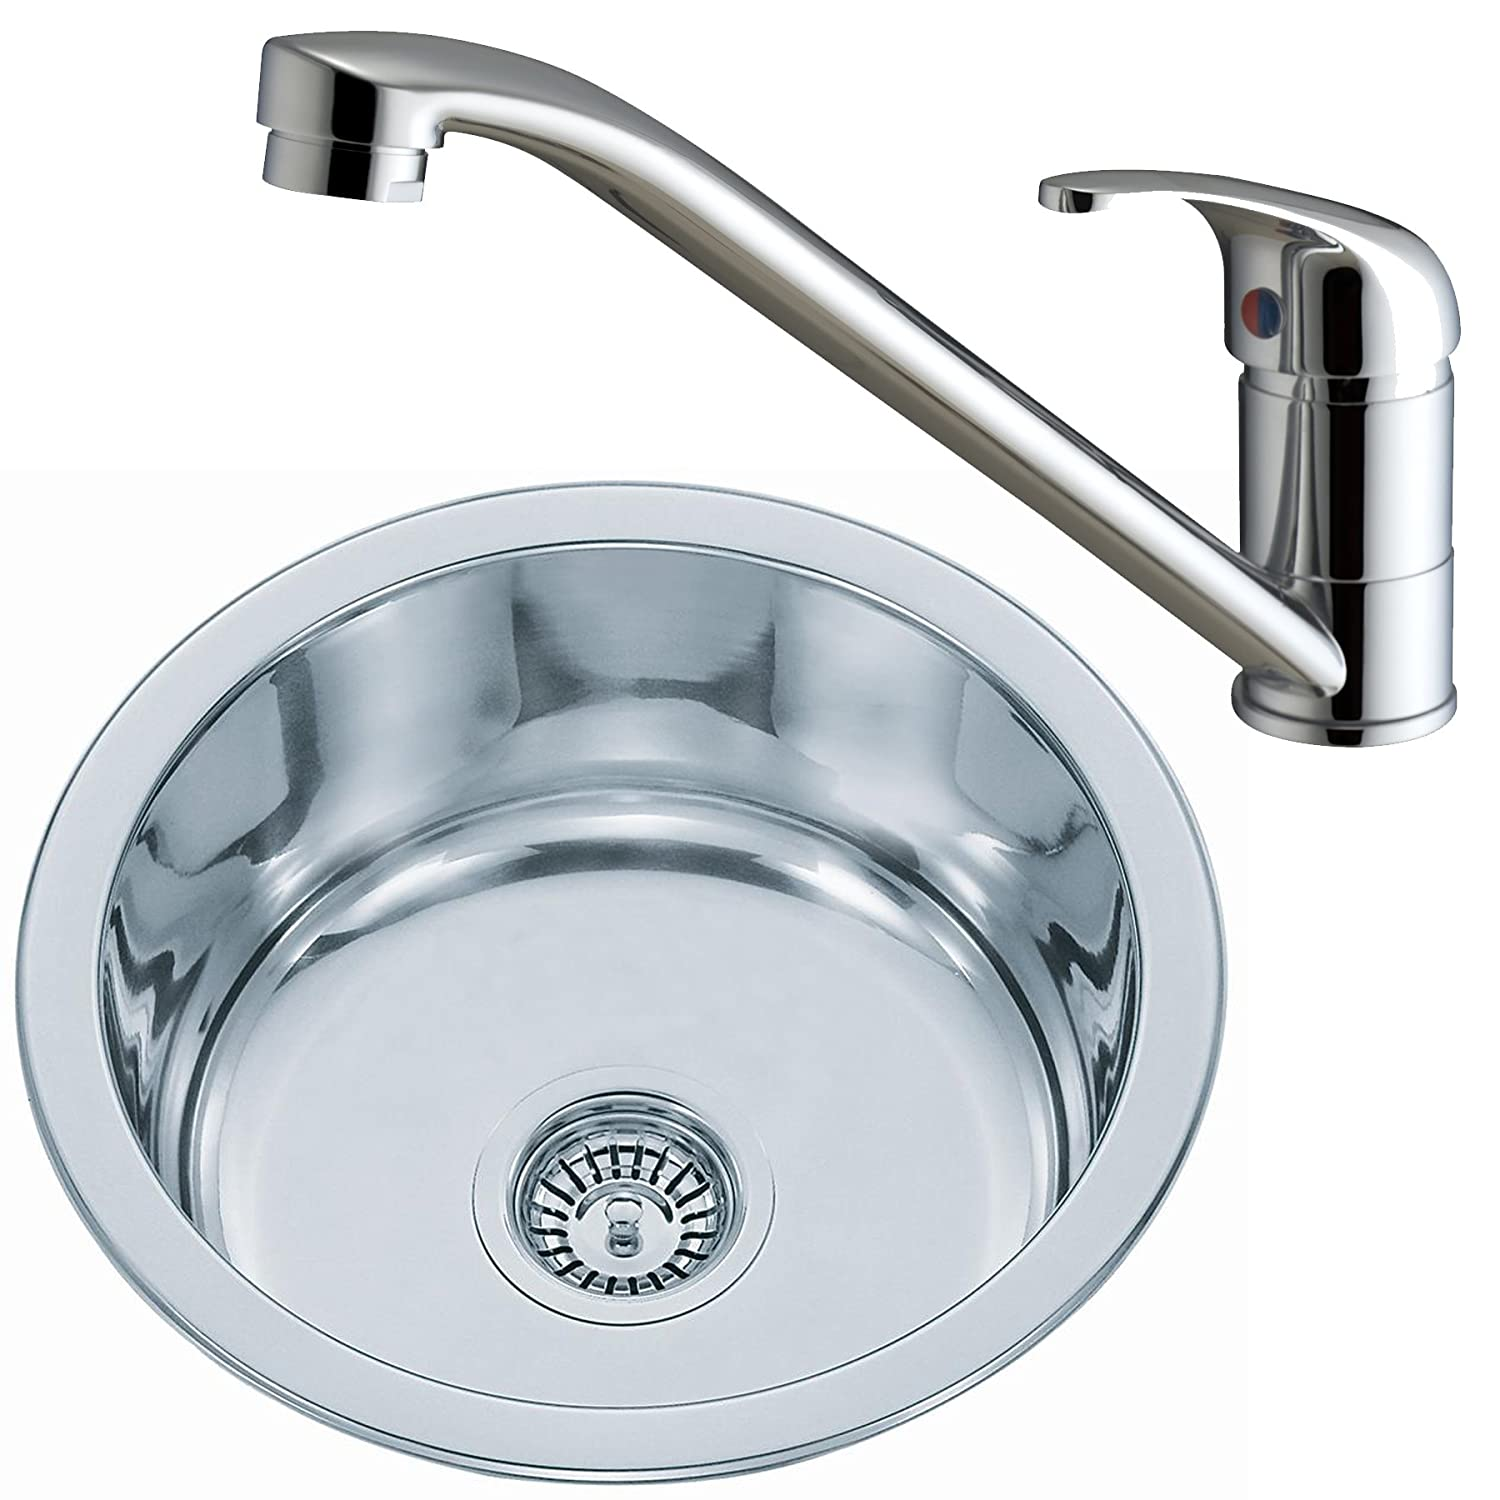 Round Kitchen Sink Stainless Steel and Small Kitchen Tap Single ...